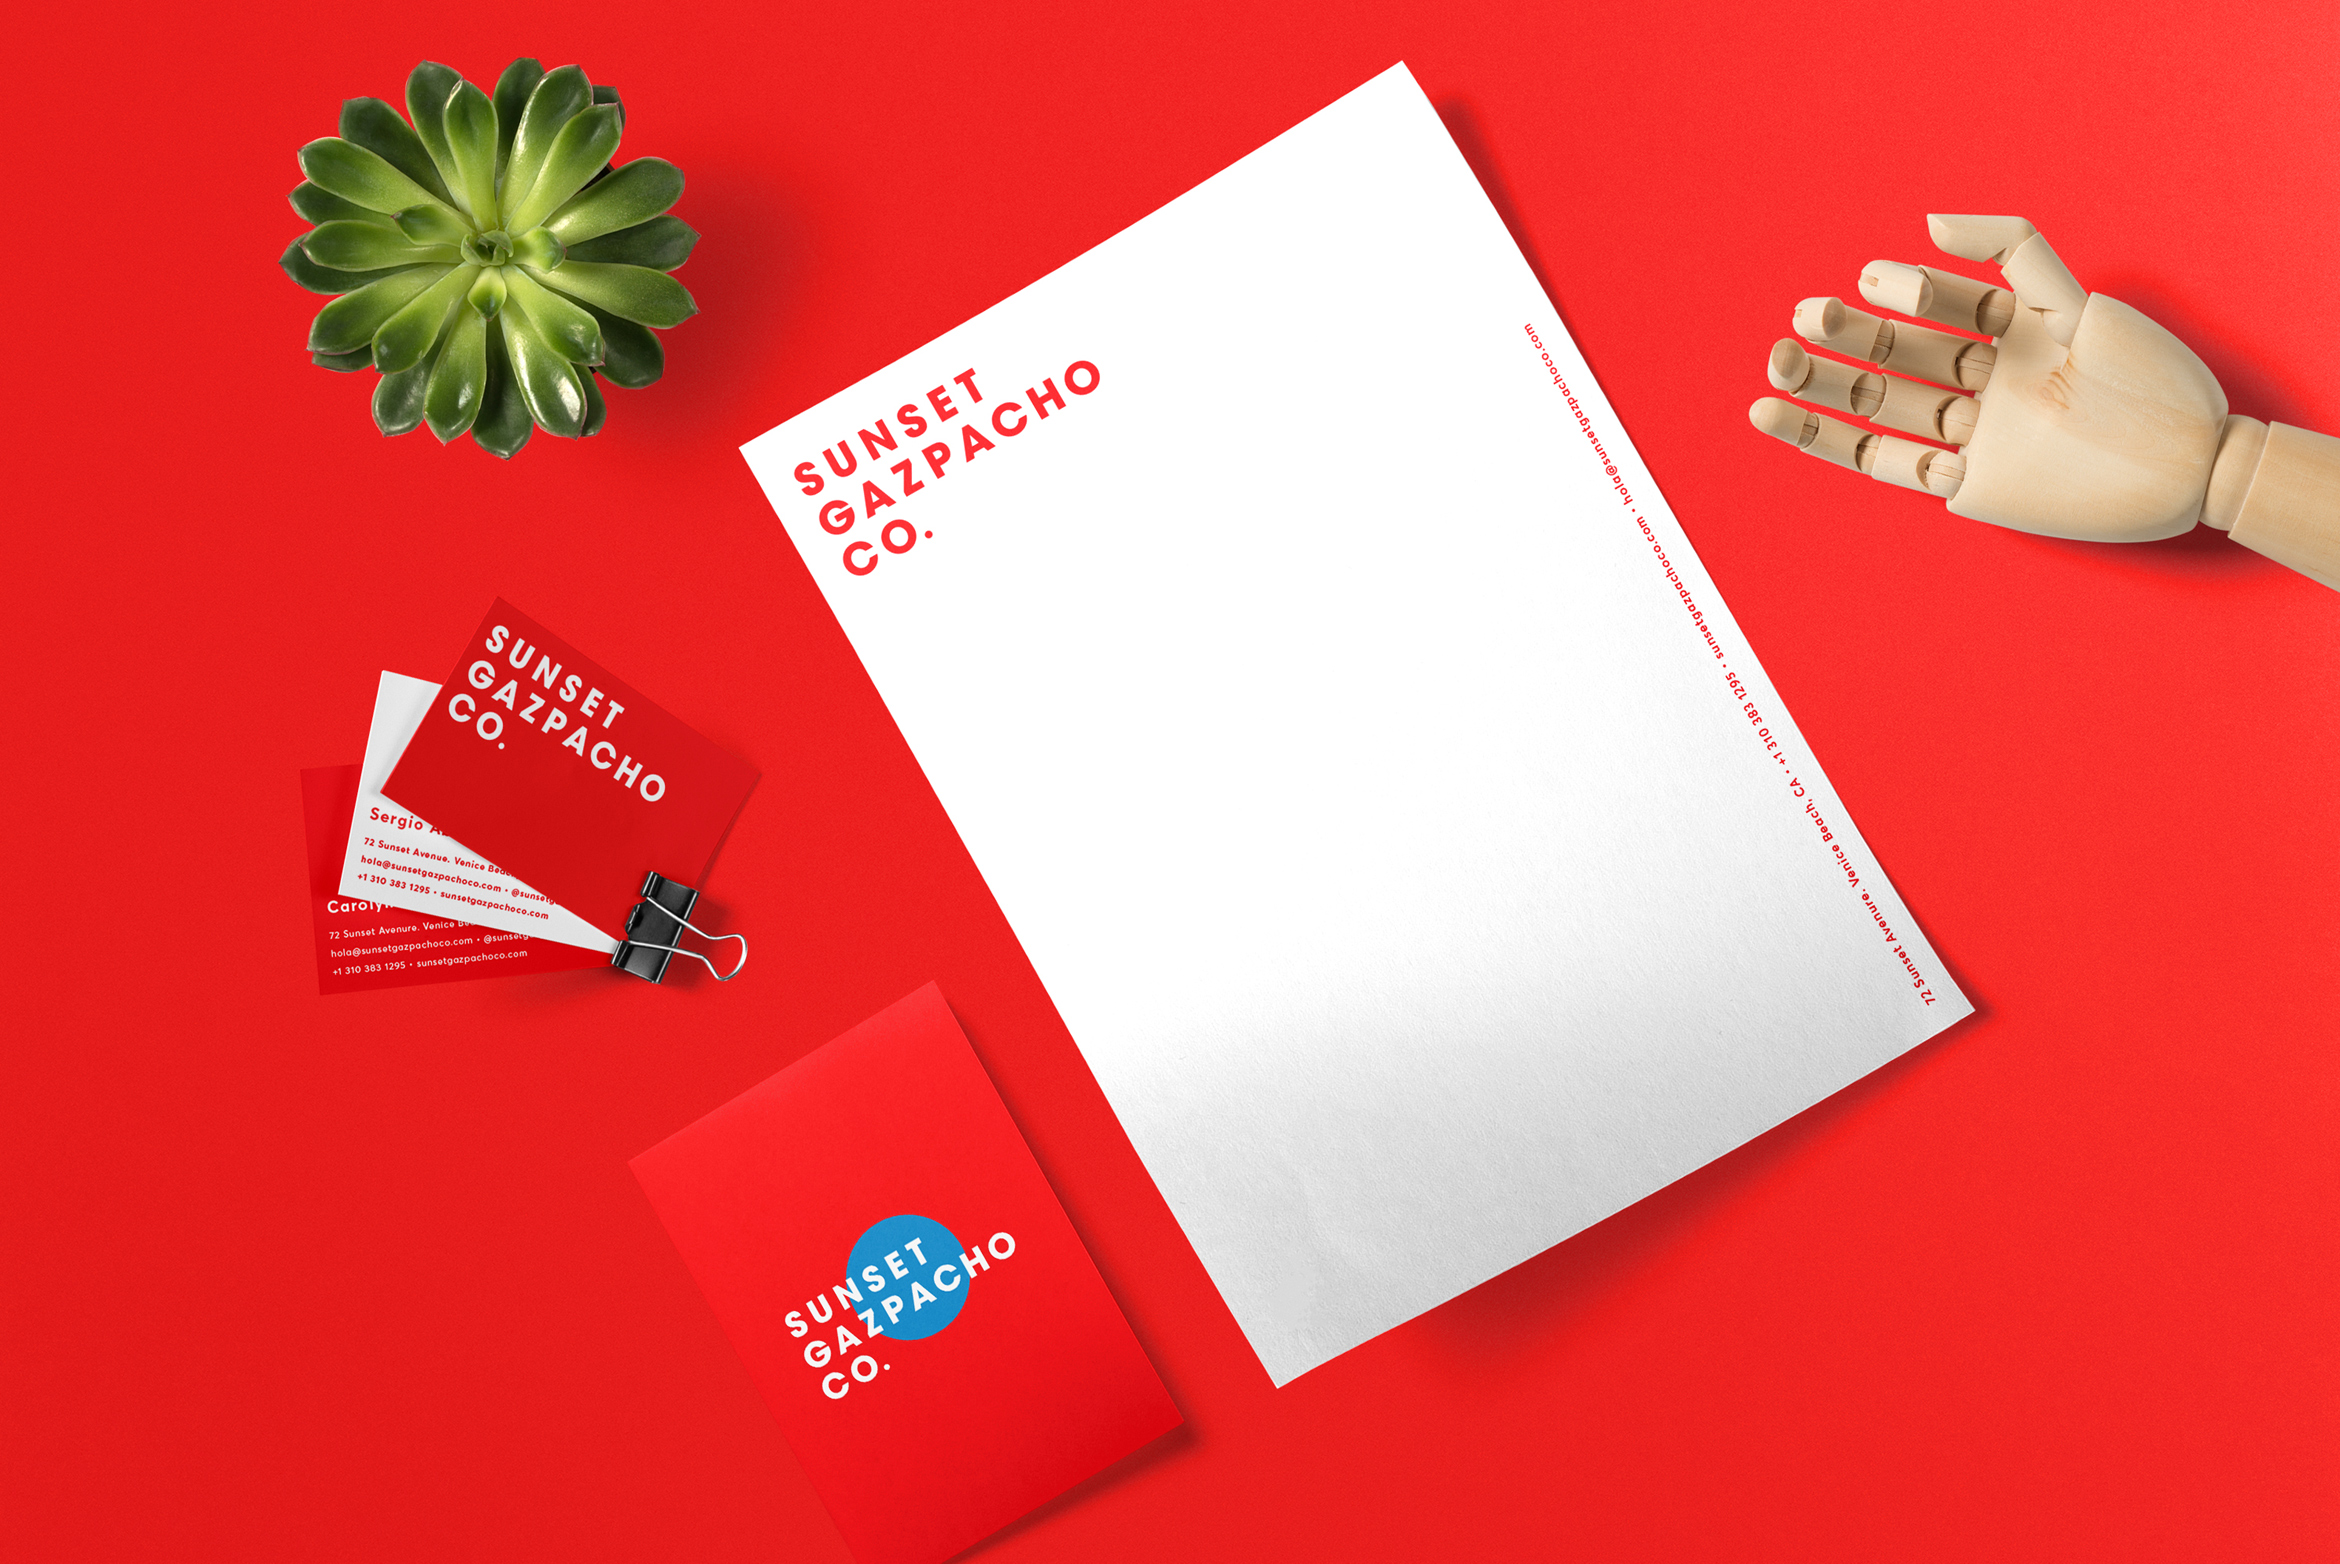 sunset_gazpacho_branding_2_full_grid_lauraniubo